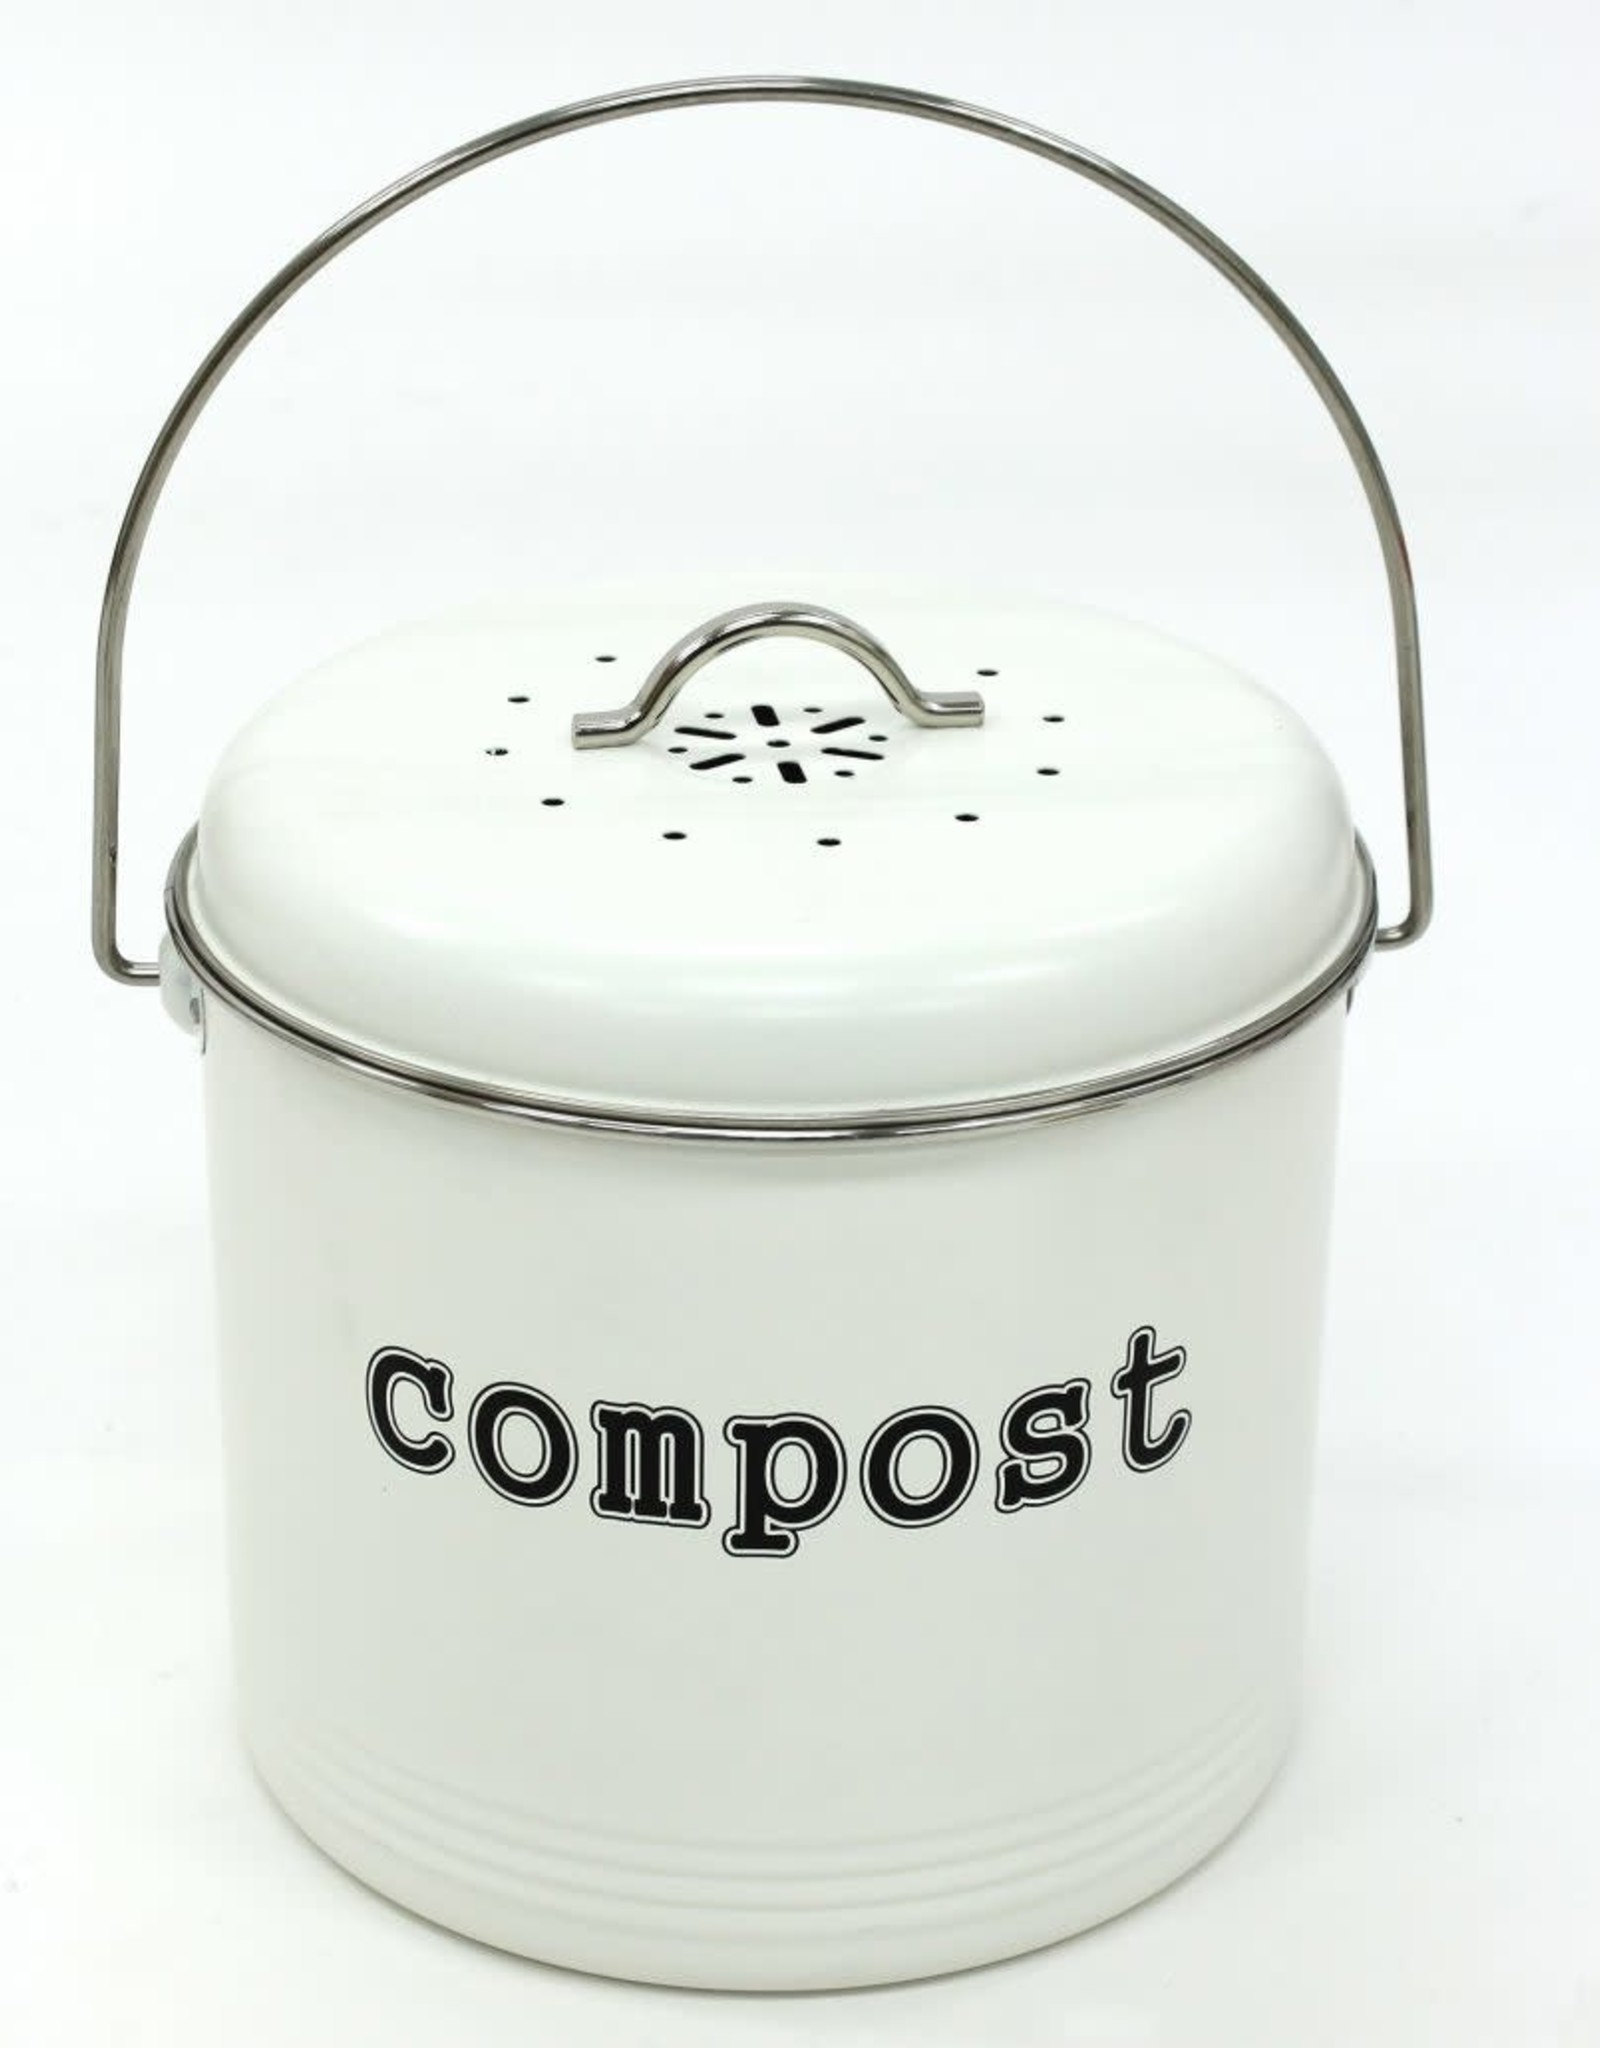 Cathay Compost Bucket Cathay Filter Small